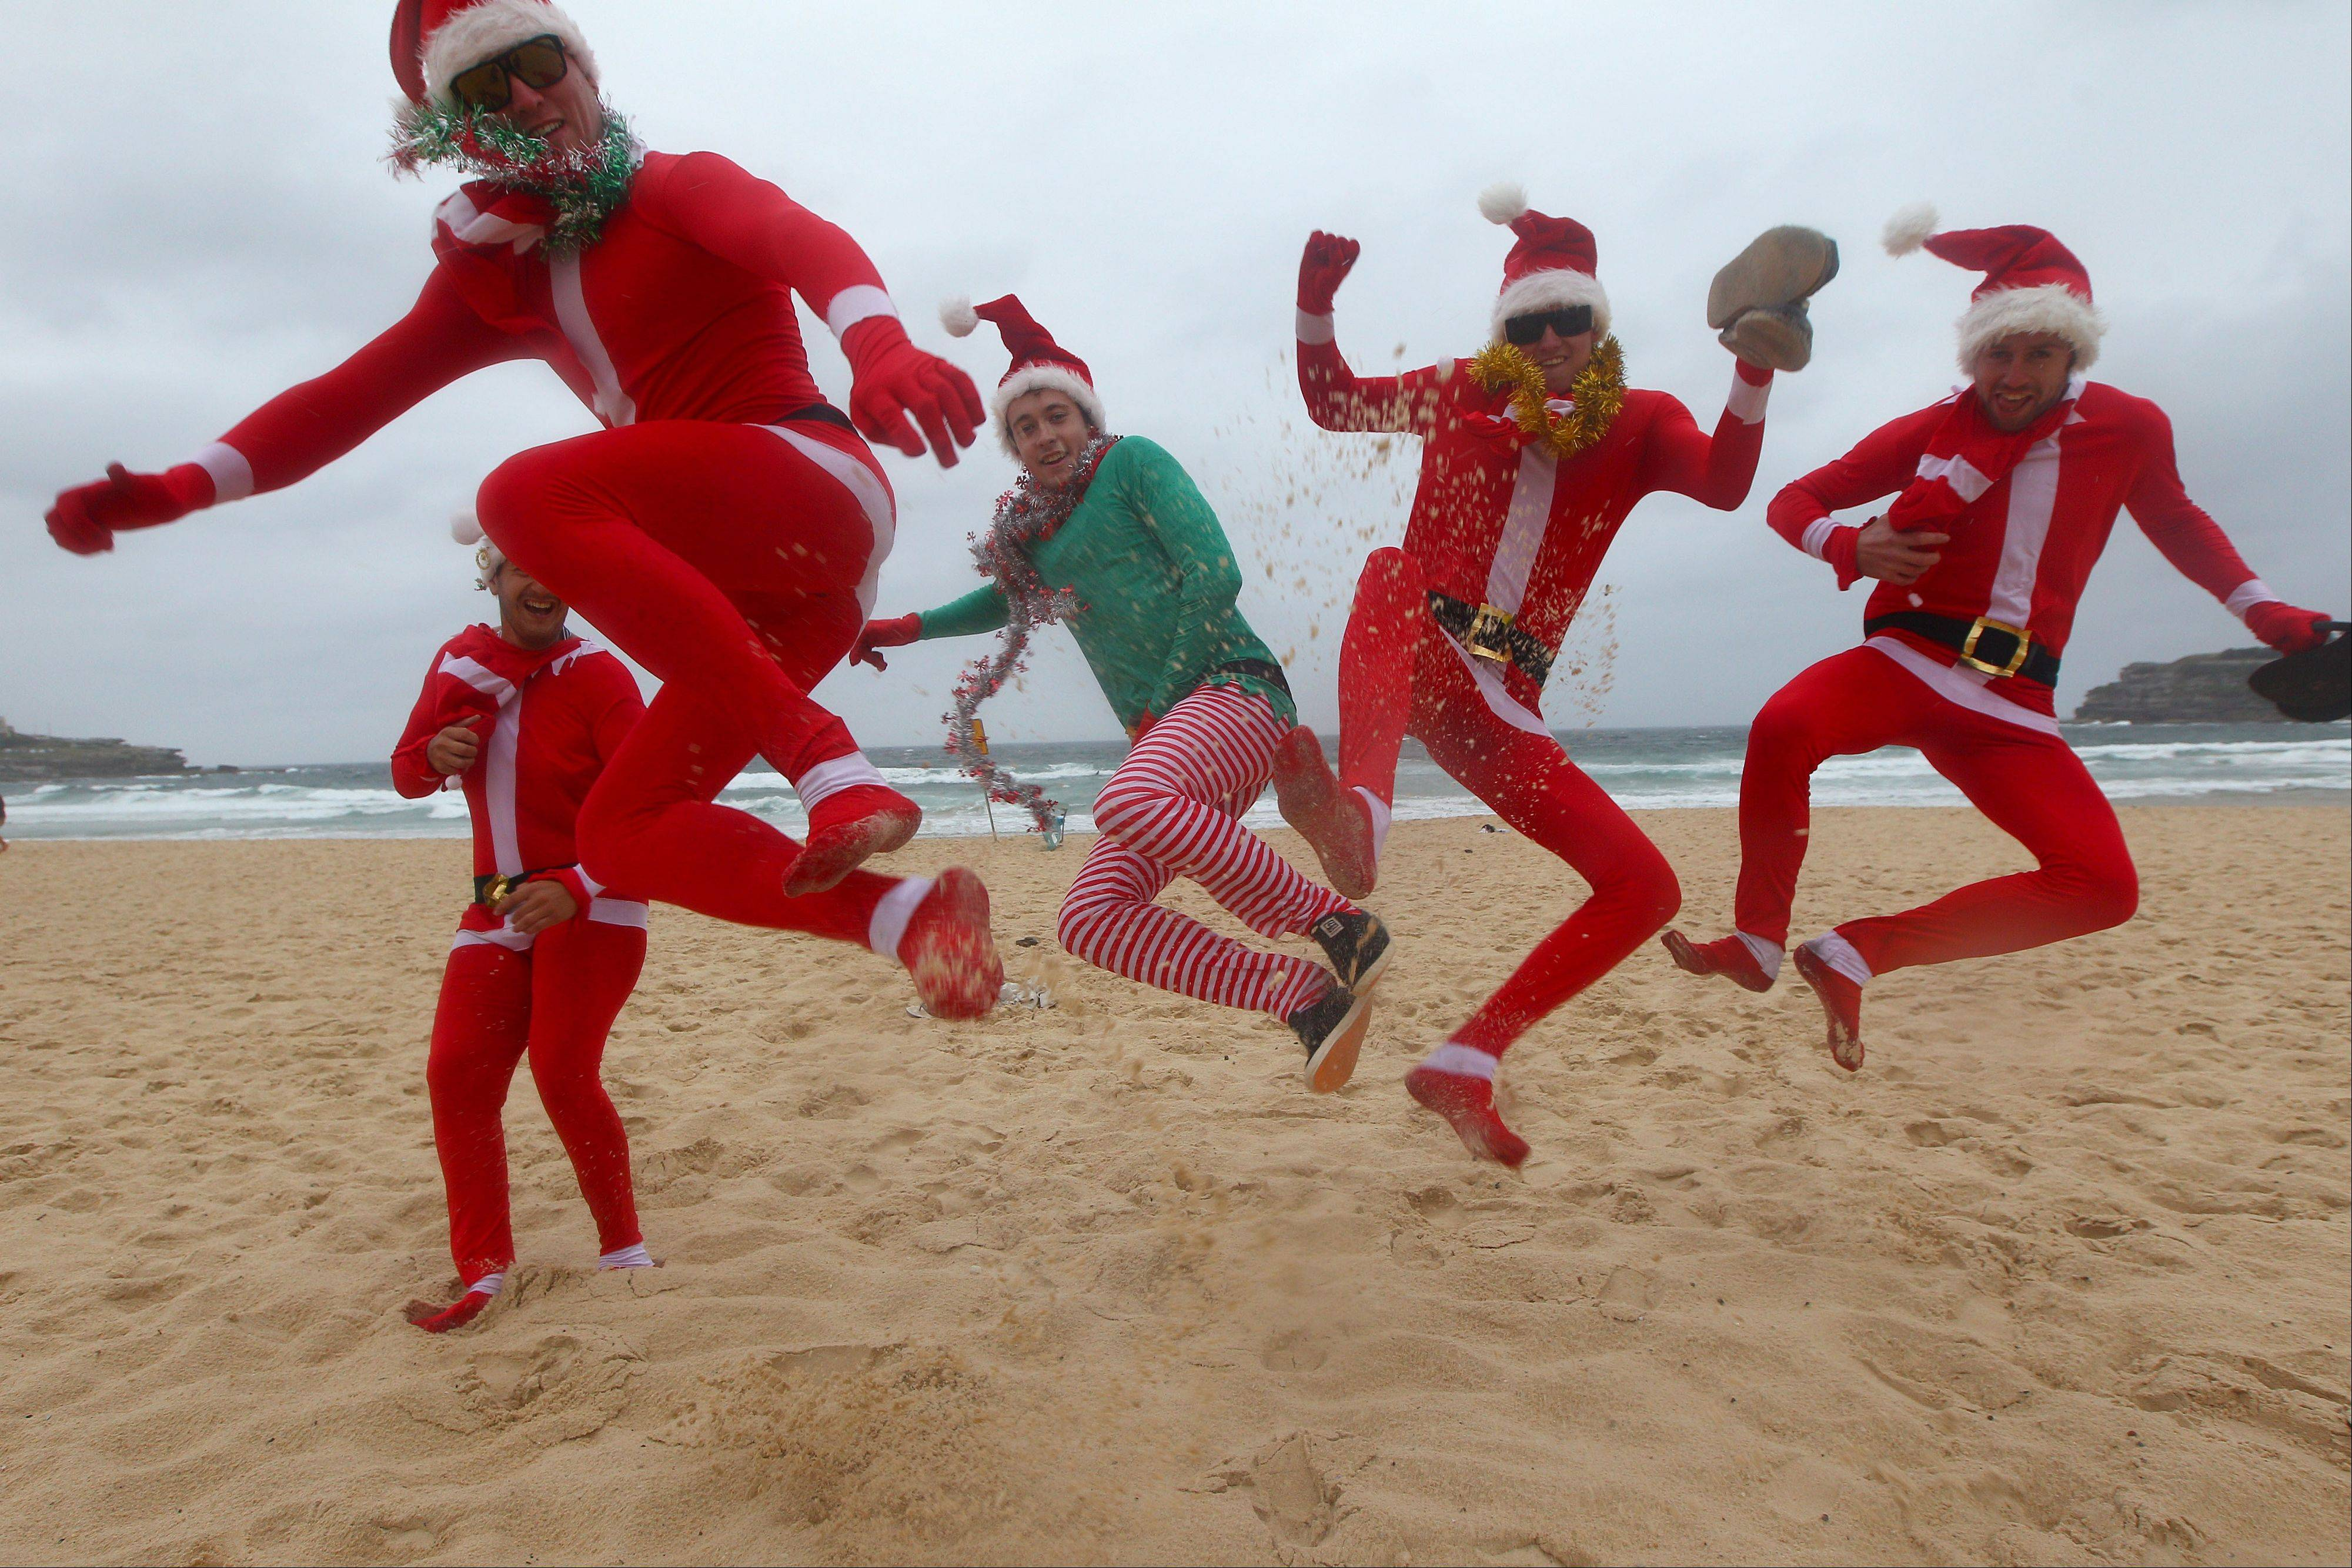 British travelers, left to right, Liam Skalley, John Arthurs, Ben Saunders, Sam Hope and Liam Fillingham kick up their heels as they celebrate Christmas Day despite wet and cold weather at Bondi Beach in Sydney, Australia, Tuesday, Dec. 25, 2012.